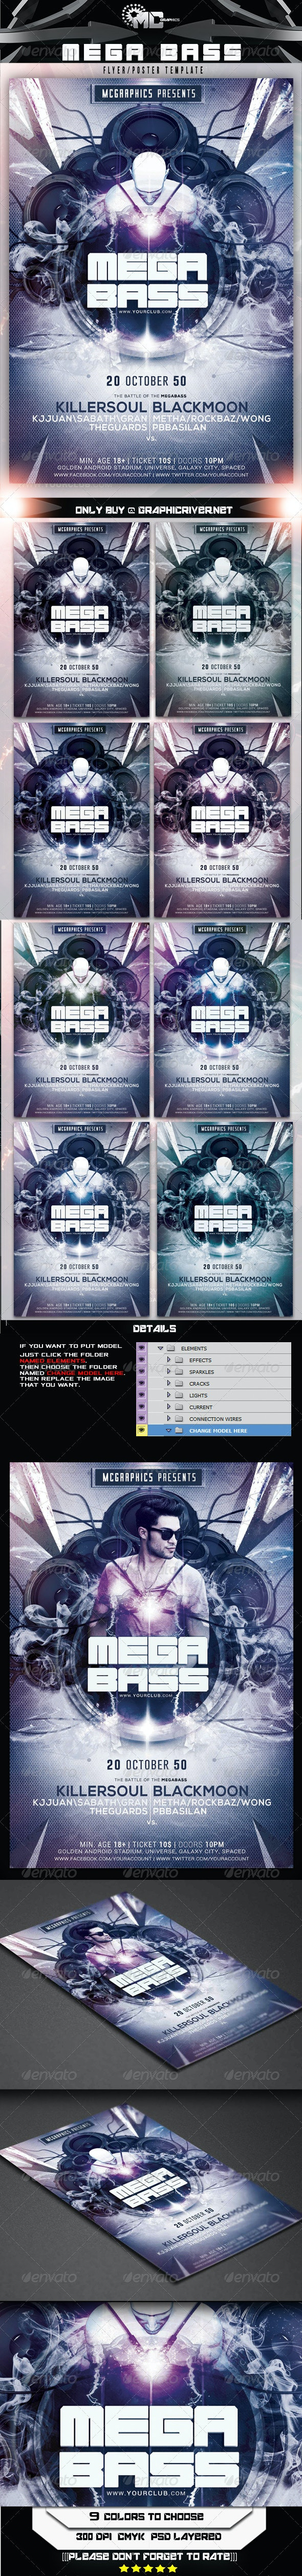 Mega Bass Flyer/Poster Template - Clubs & Parties Events